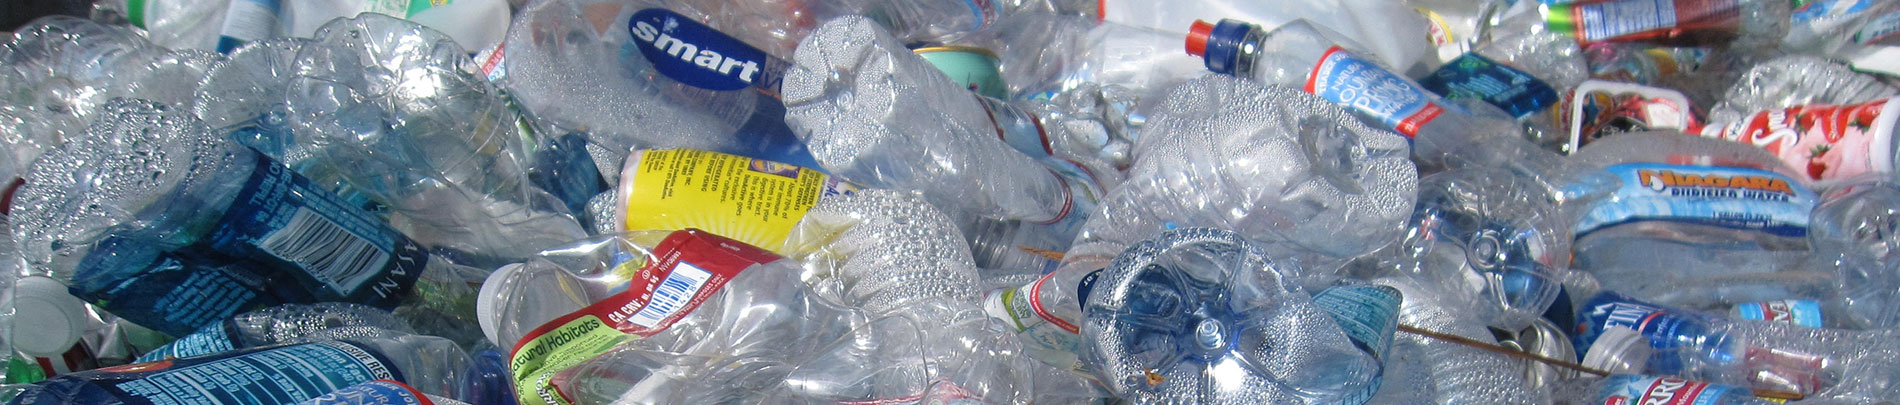 A close up of recycled plastic bottles.